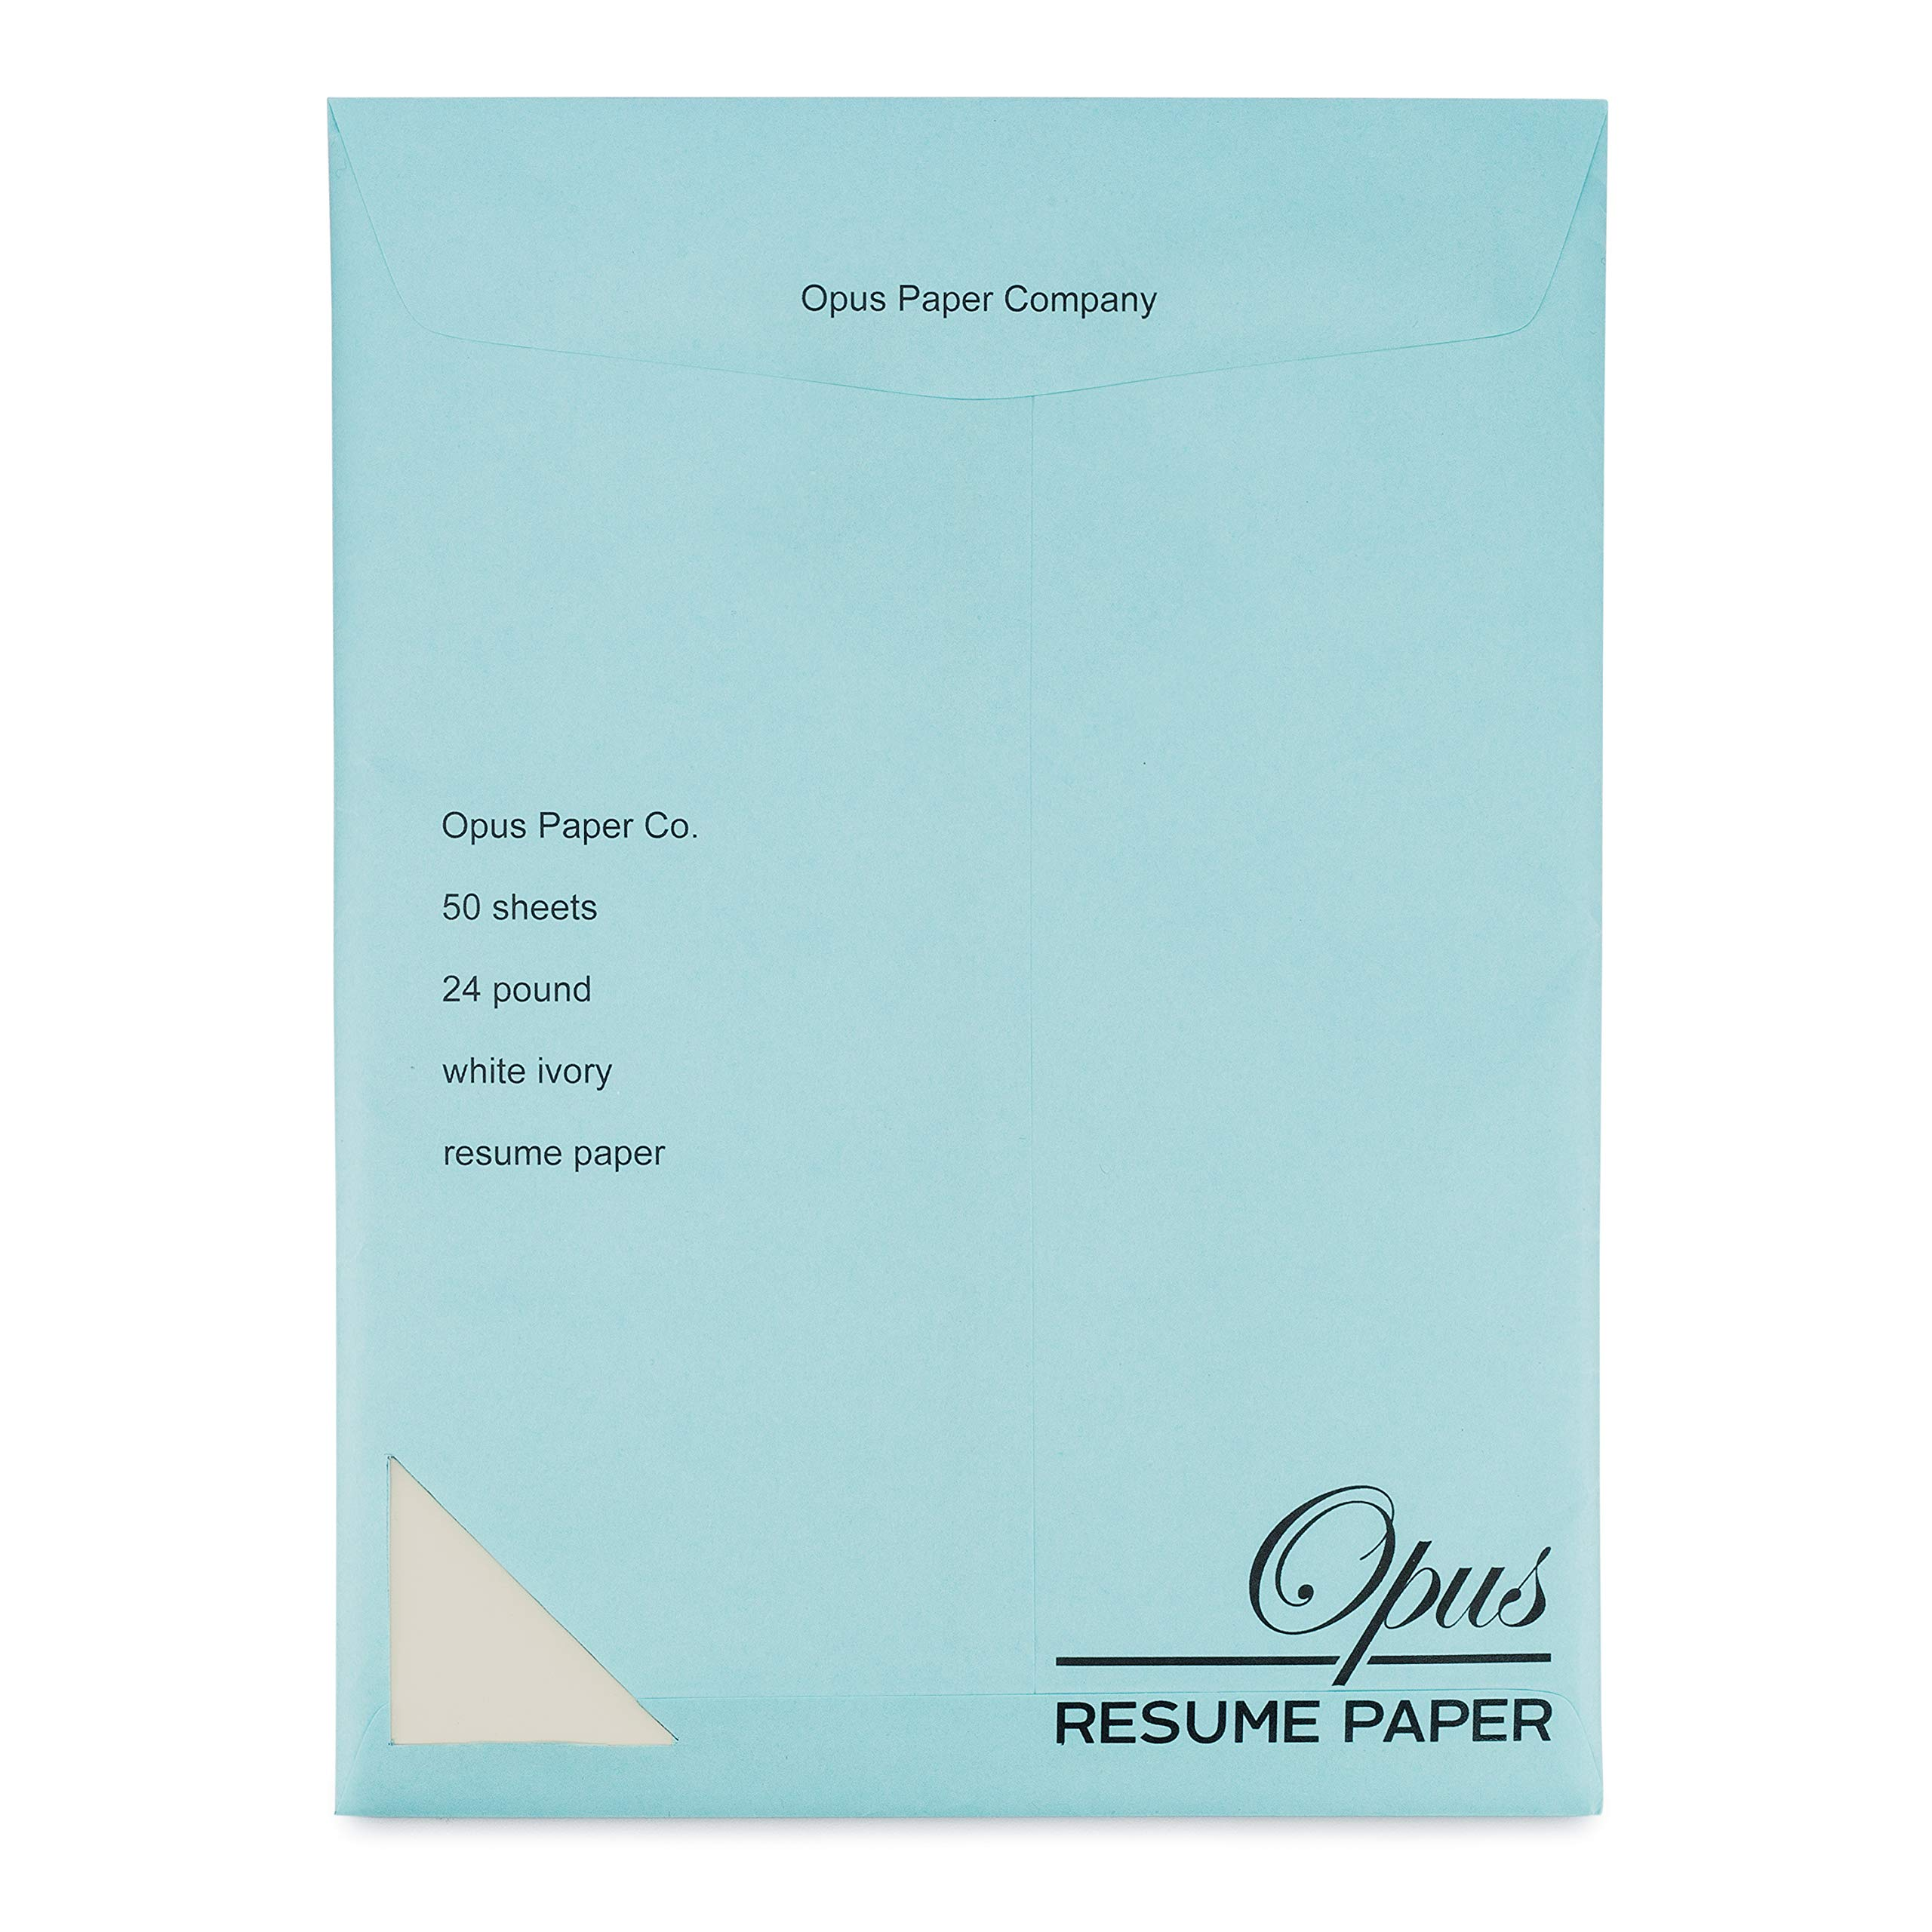 Plant 1 Tree with Opus Resume Paper | 50 Sheets | White Ivory | No Watermark | 24 Pound | Ideal Stationery for Resumes, Cover Letters, Letterhead